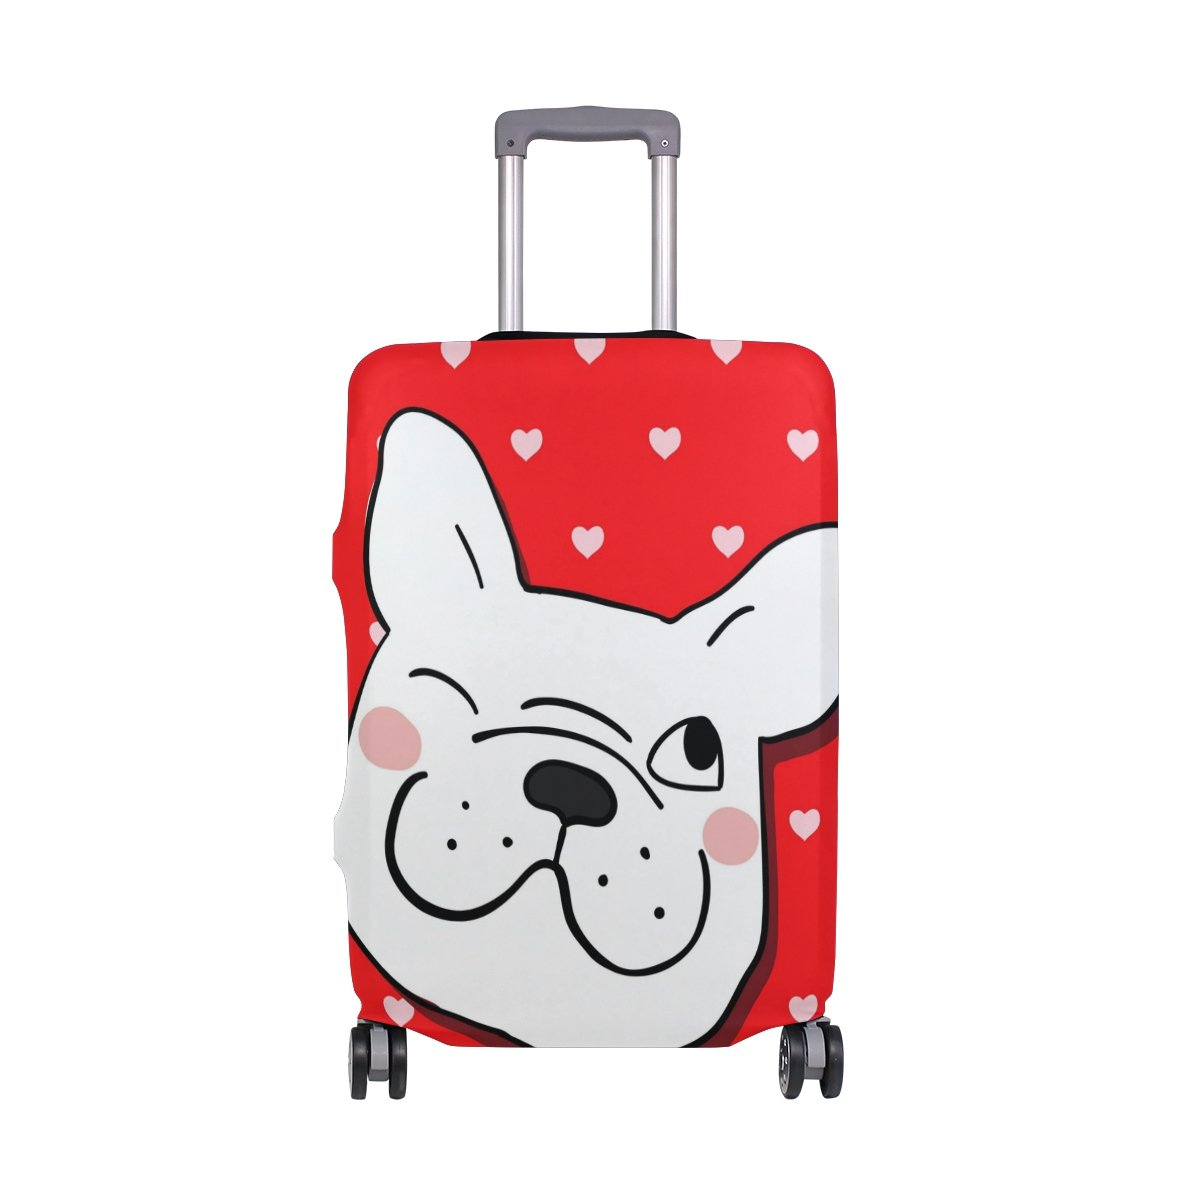 Cute Dogs Polka Dots Love Heart Suitcase Luggage Cover Protector for Travel Kids Men Women